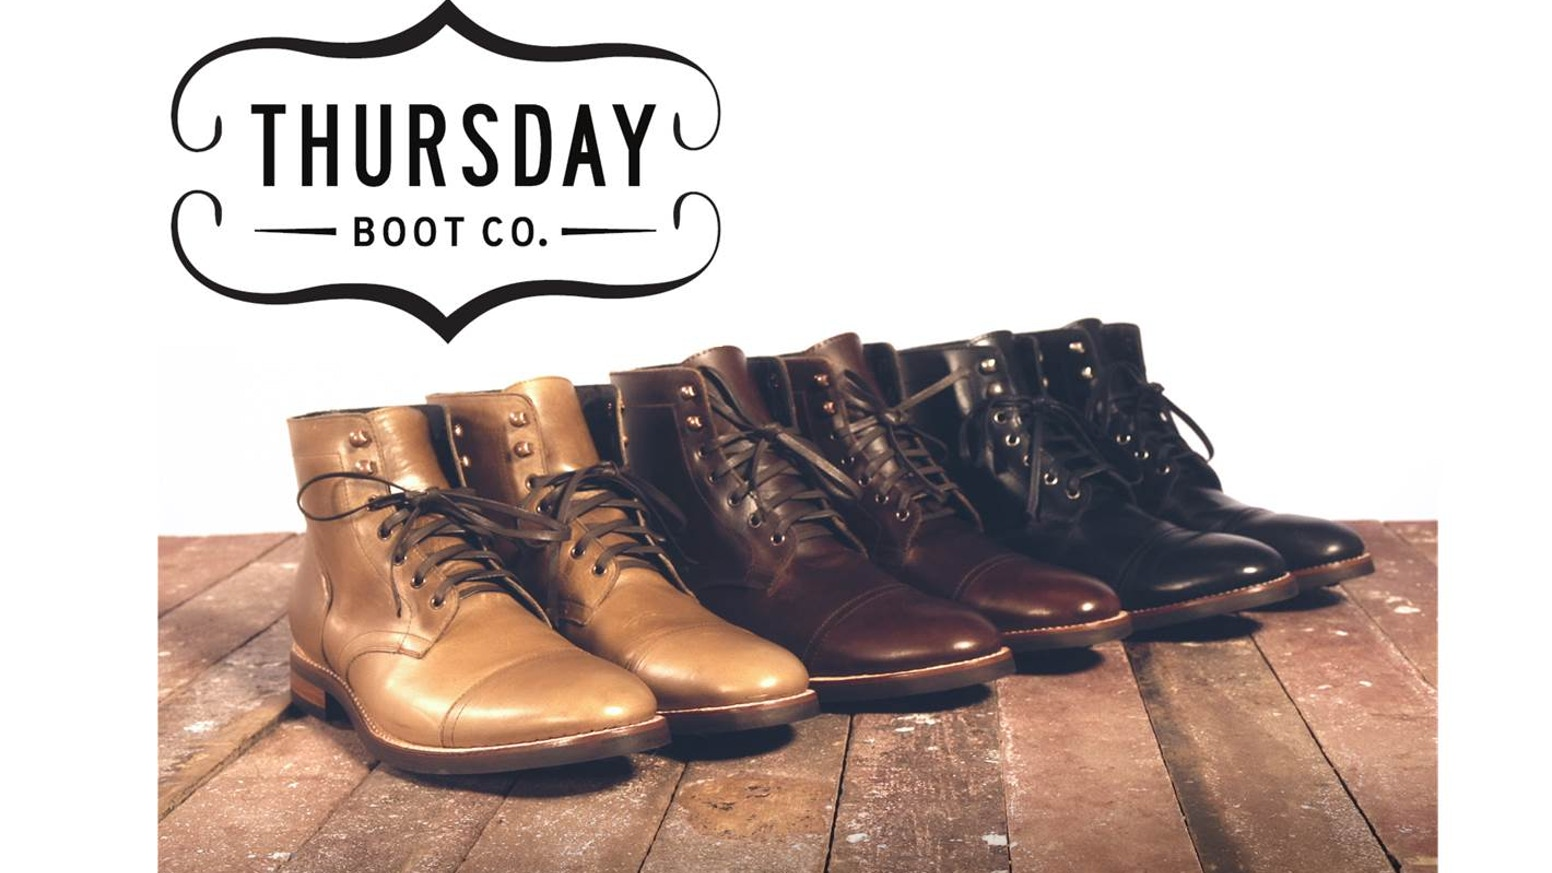 Thursday Boot Co  - THURSDAY | EVERYDAY by Nolan Walsh and